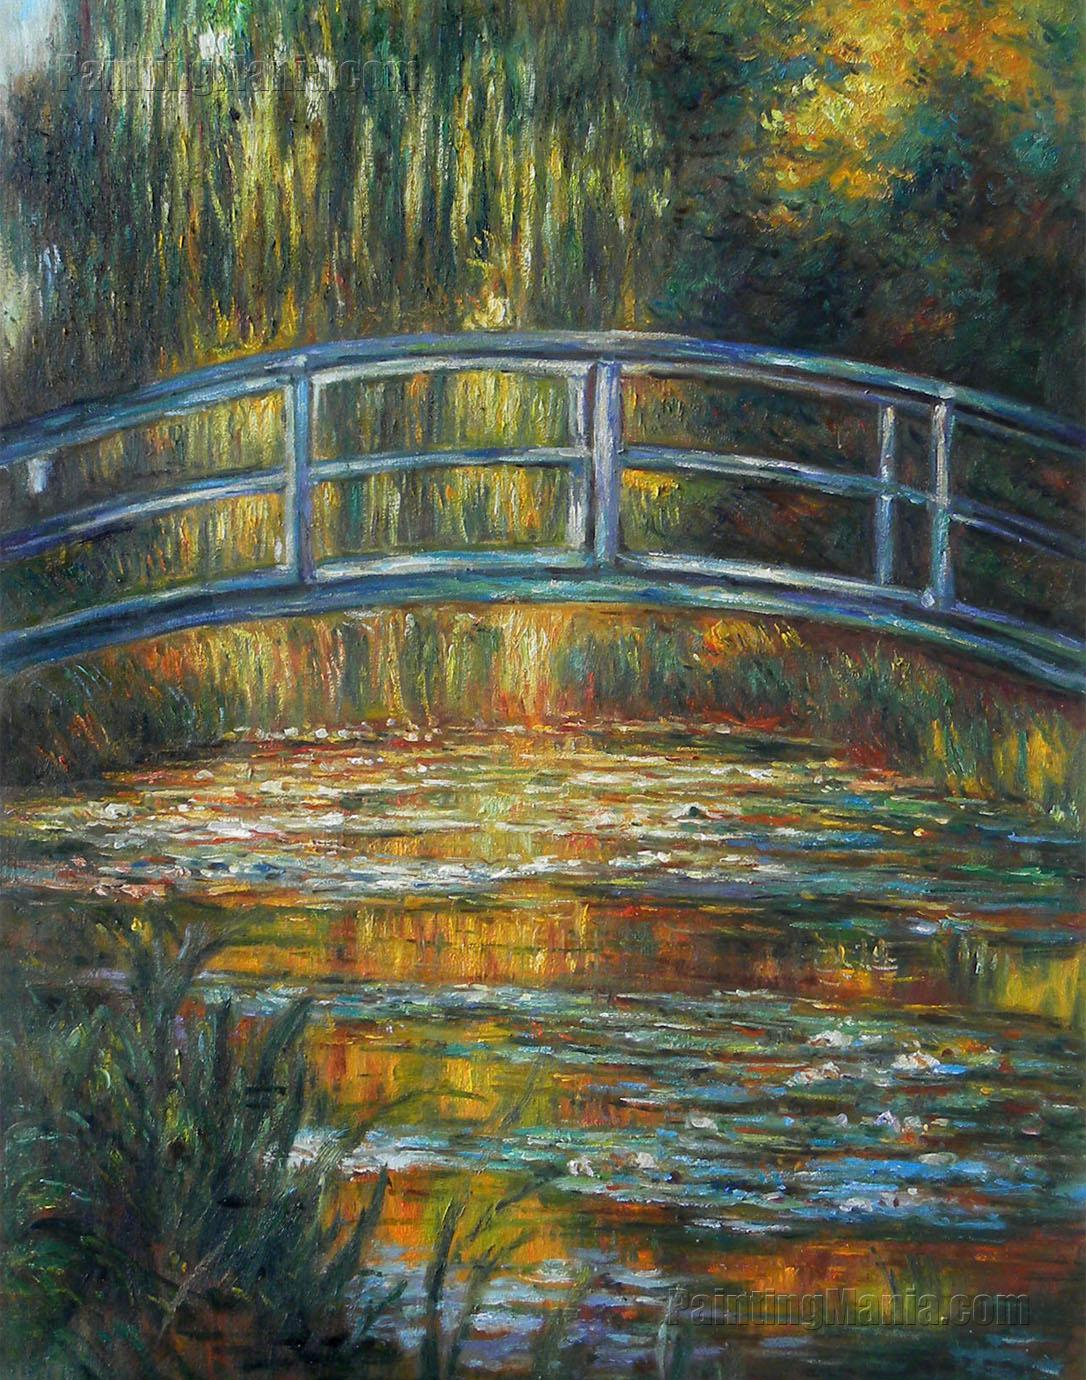 The Water Lily Bridge